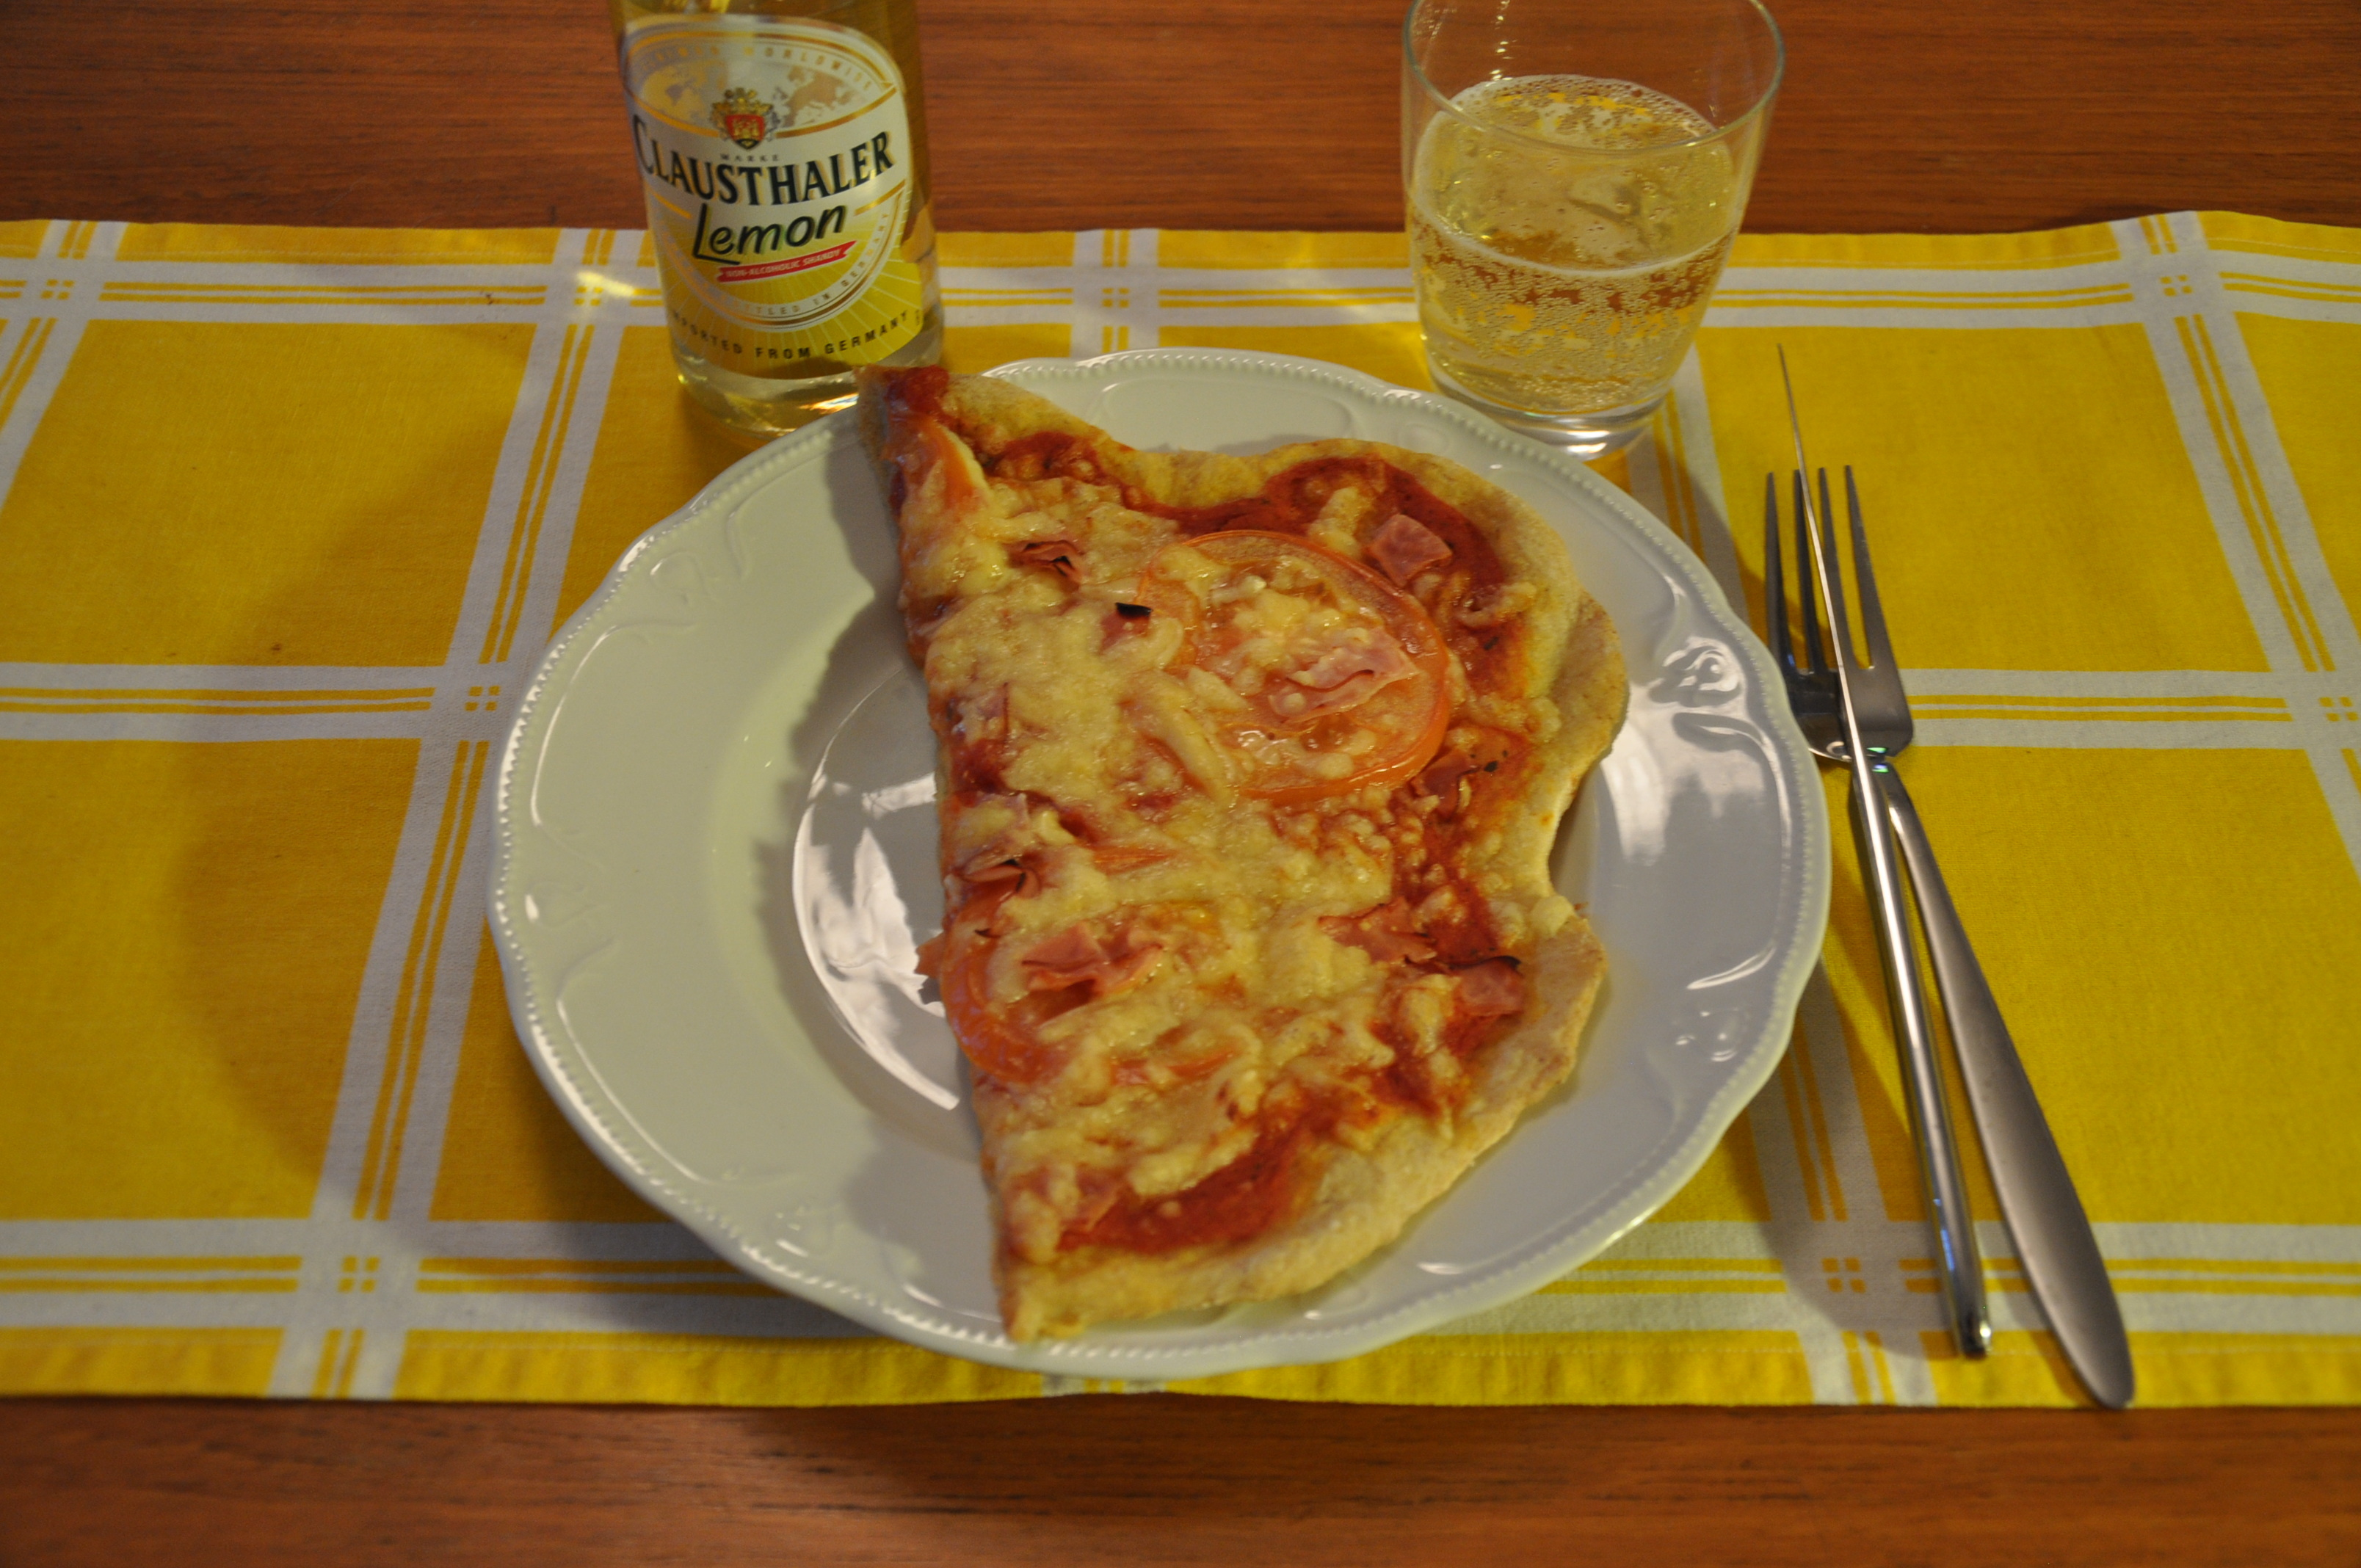 Vetefri pizzadeg